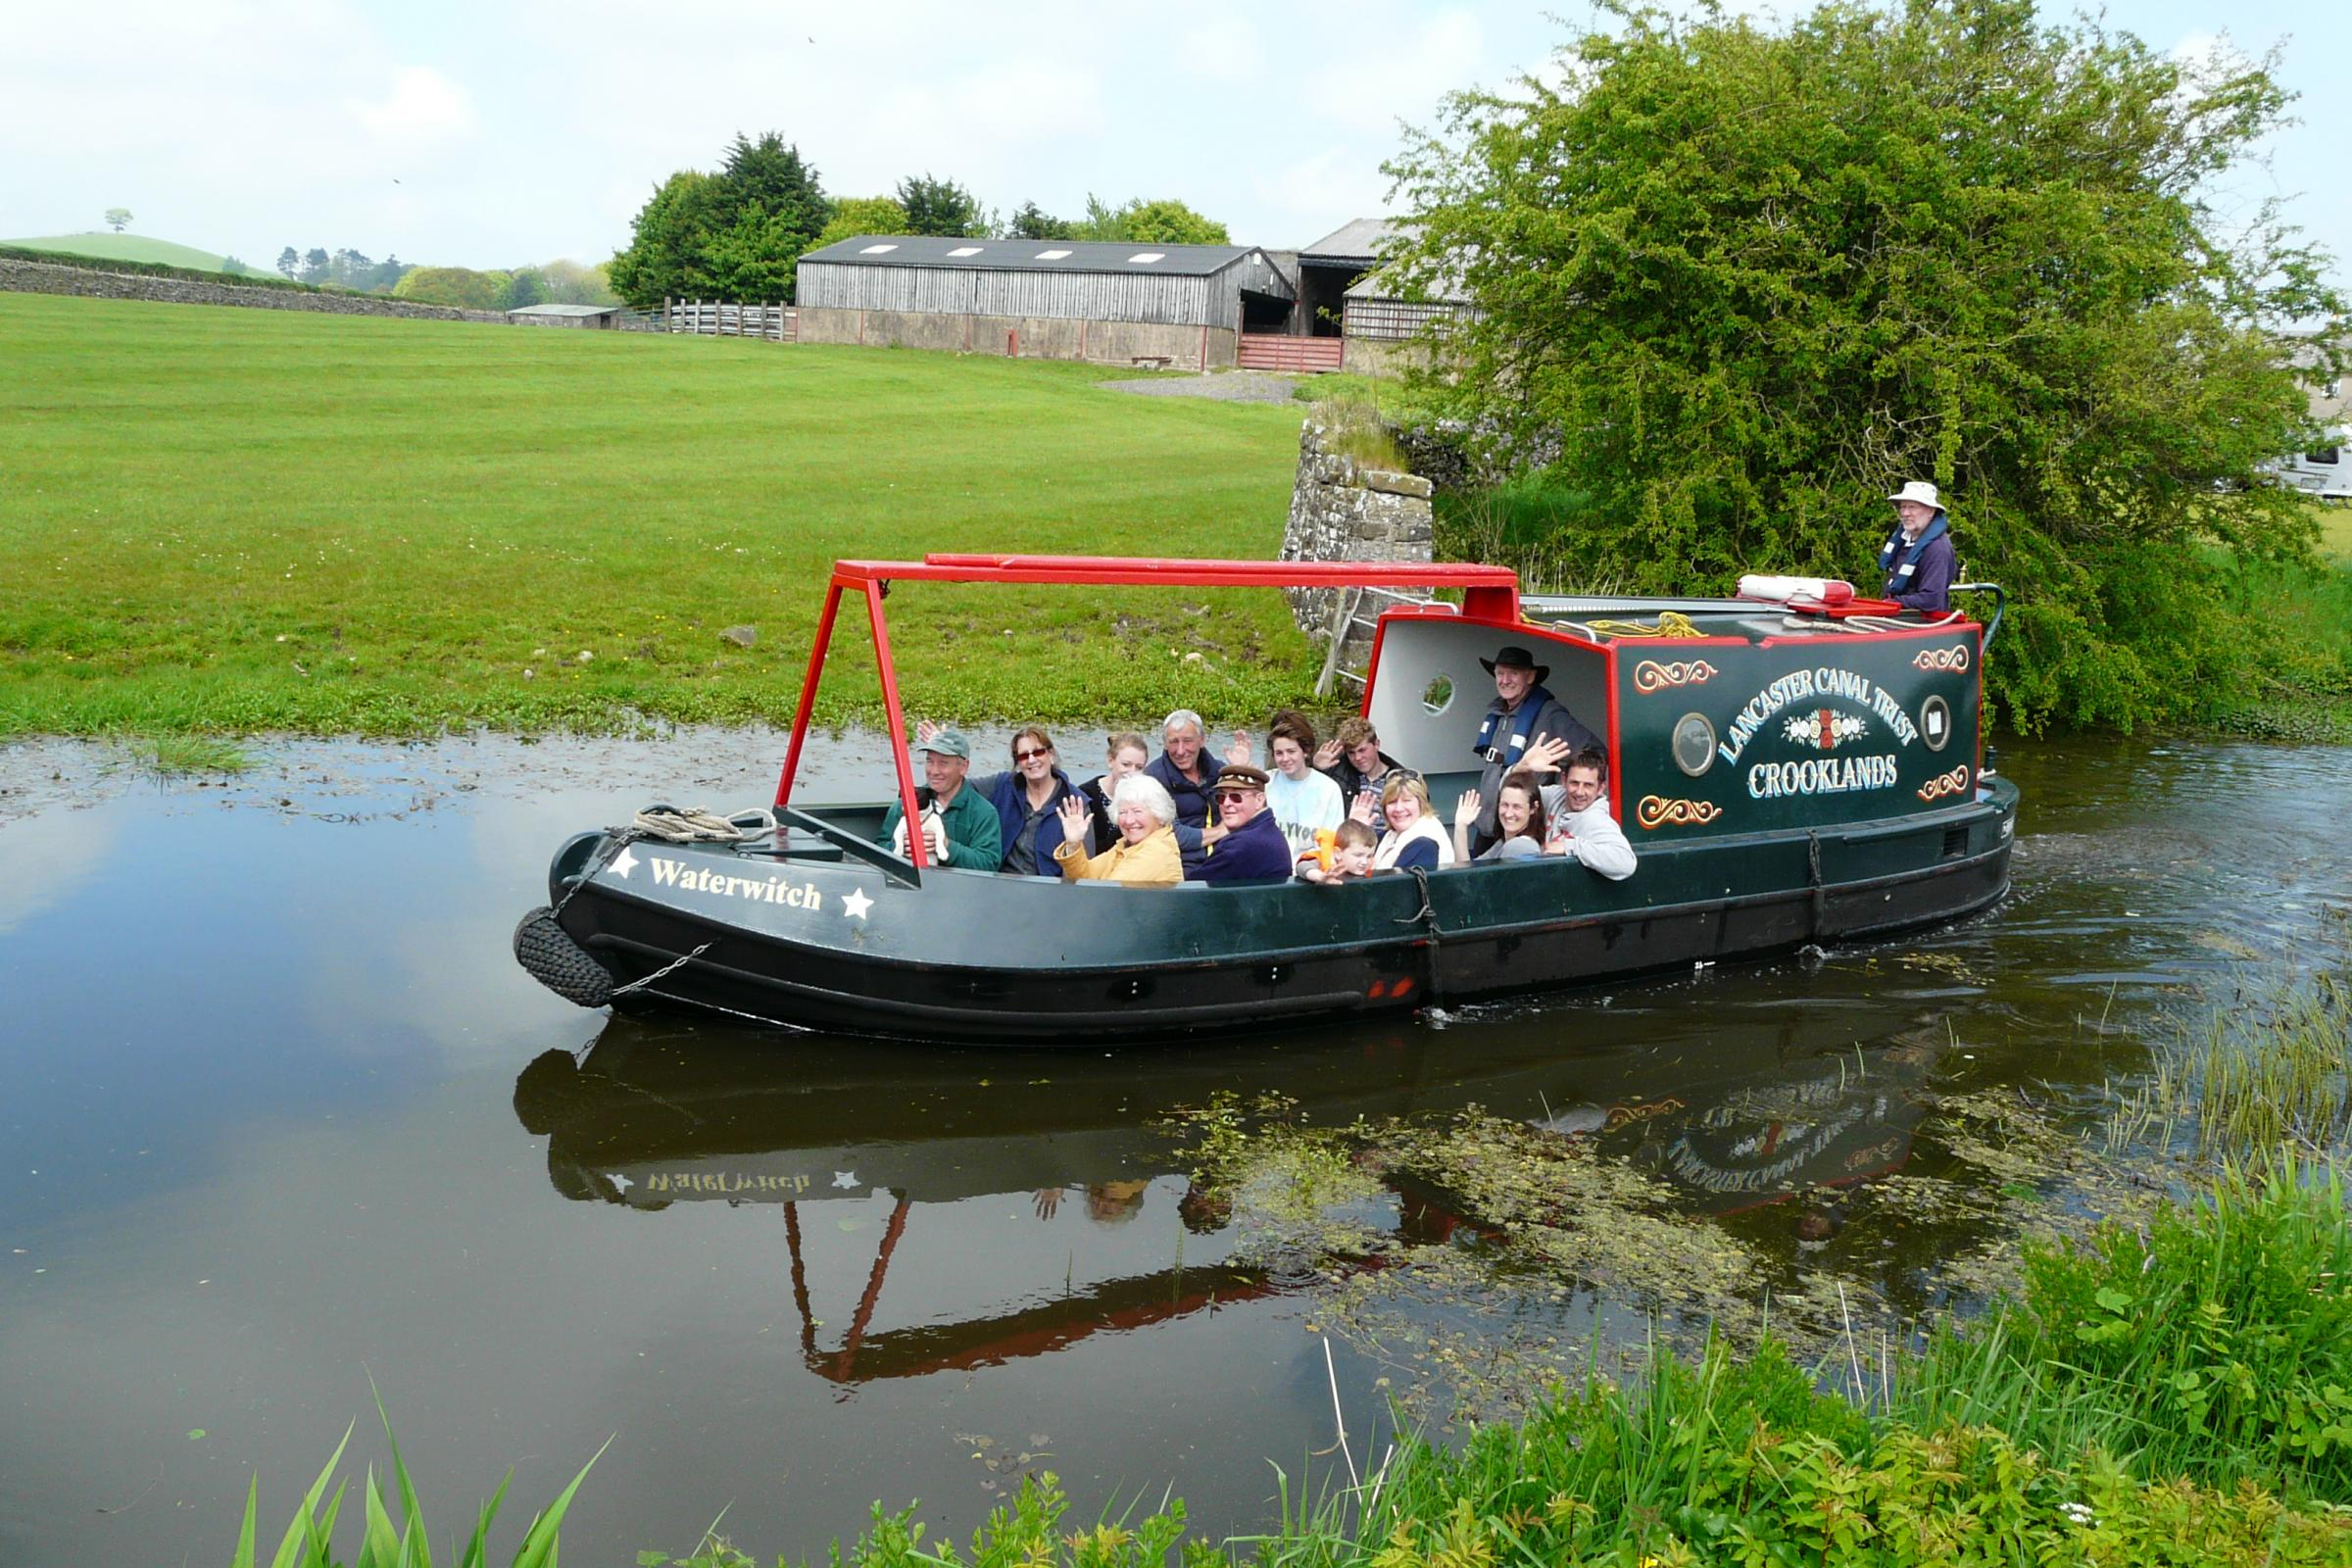 Thousands of pounds granted to Lancaster Canal